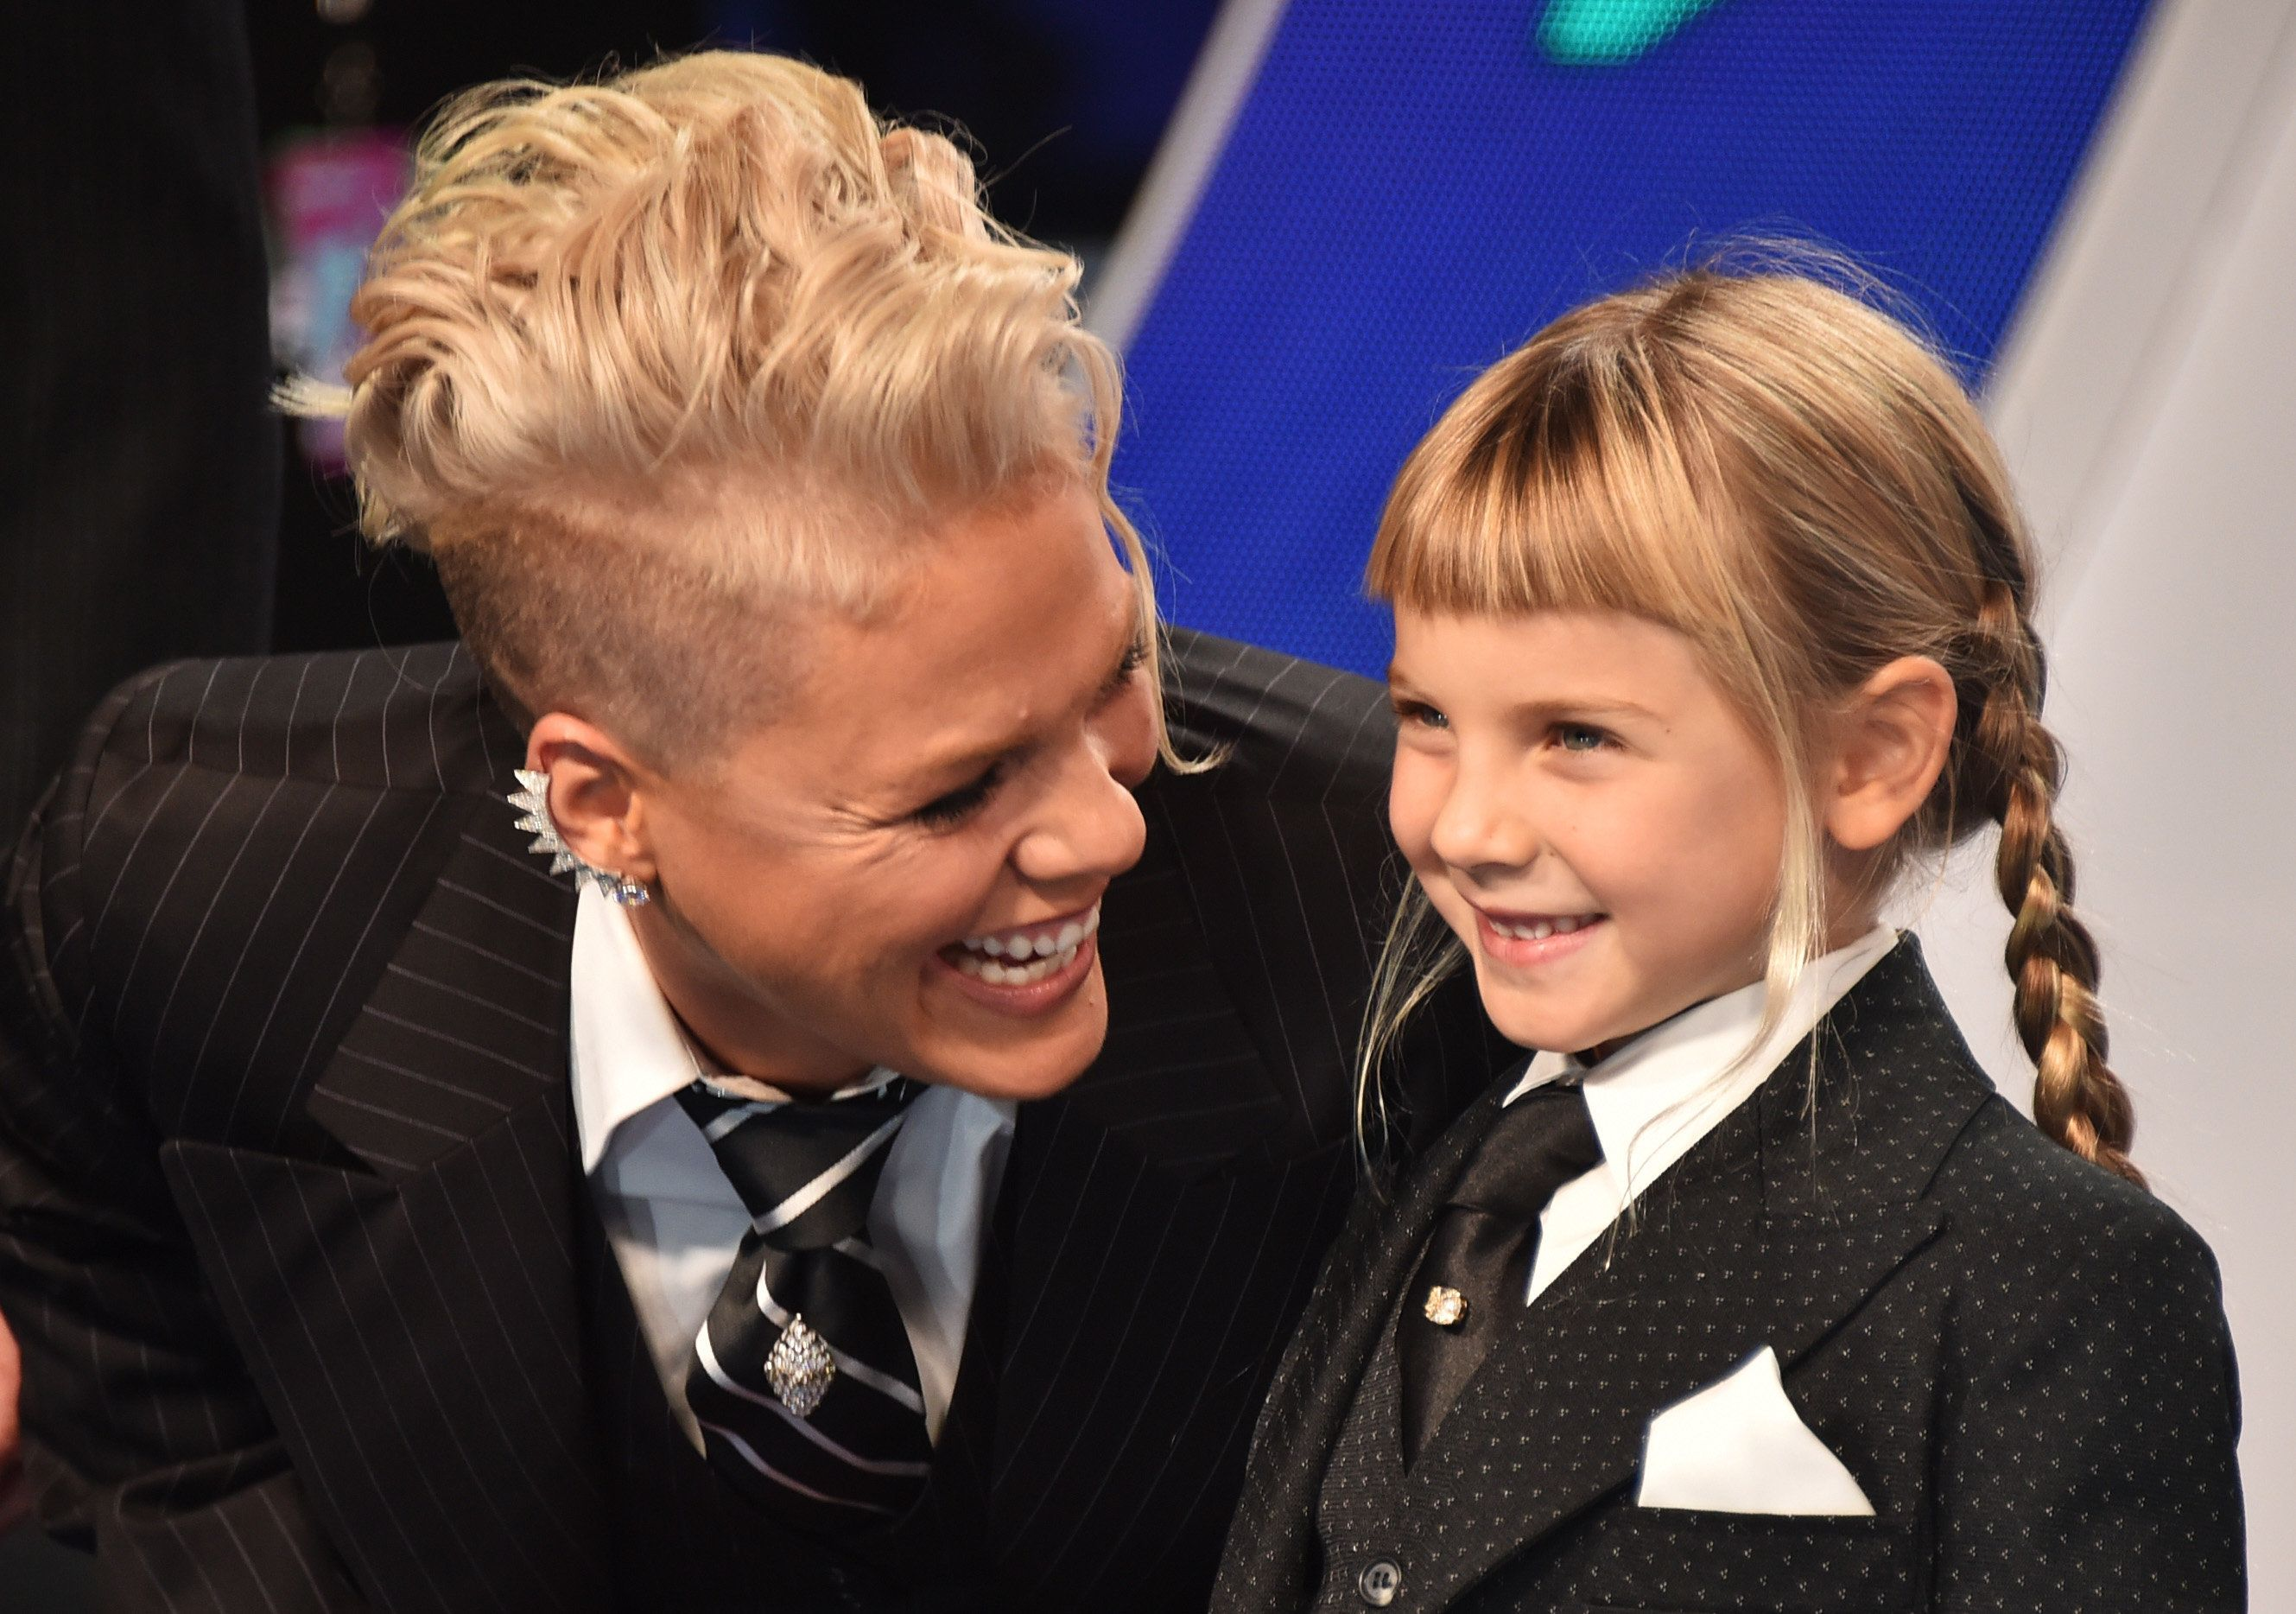 Pink is not afraid to get real about the highs and lows of parenting.